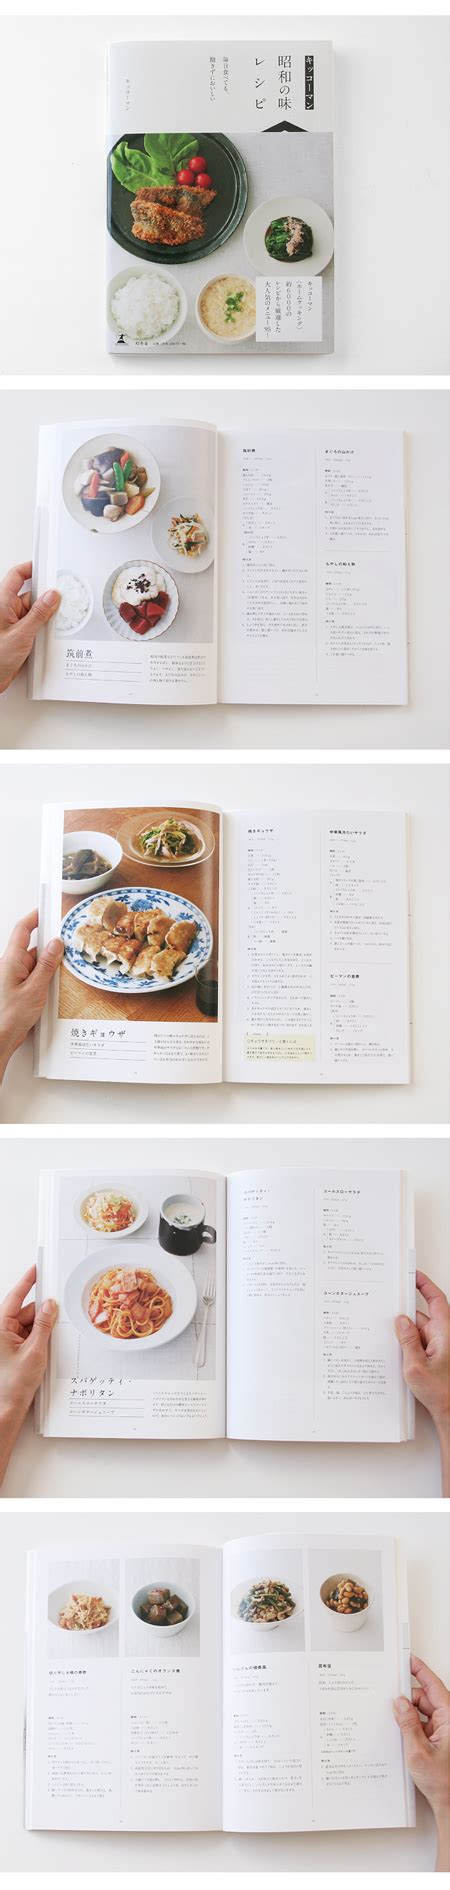 recipe book layout design alaina marie marie marie marie marie johnson generating